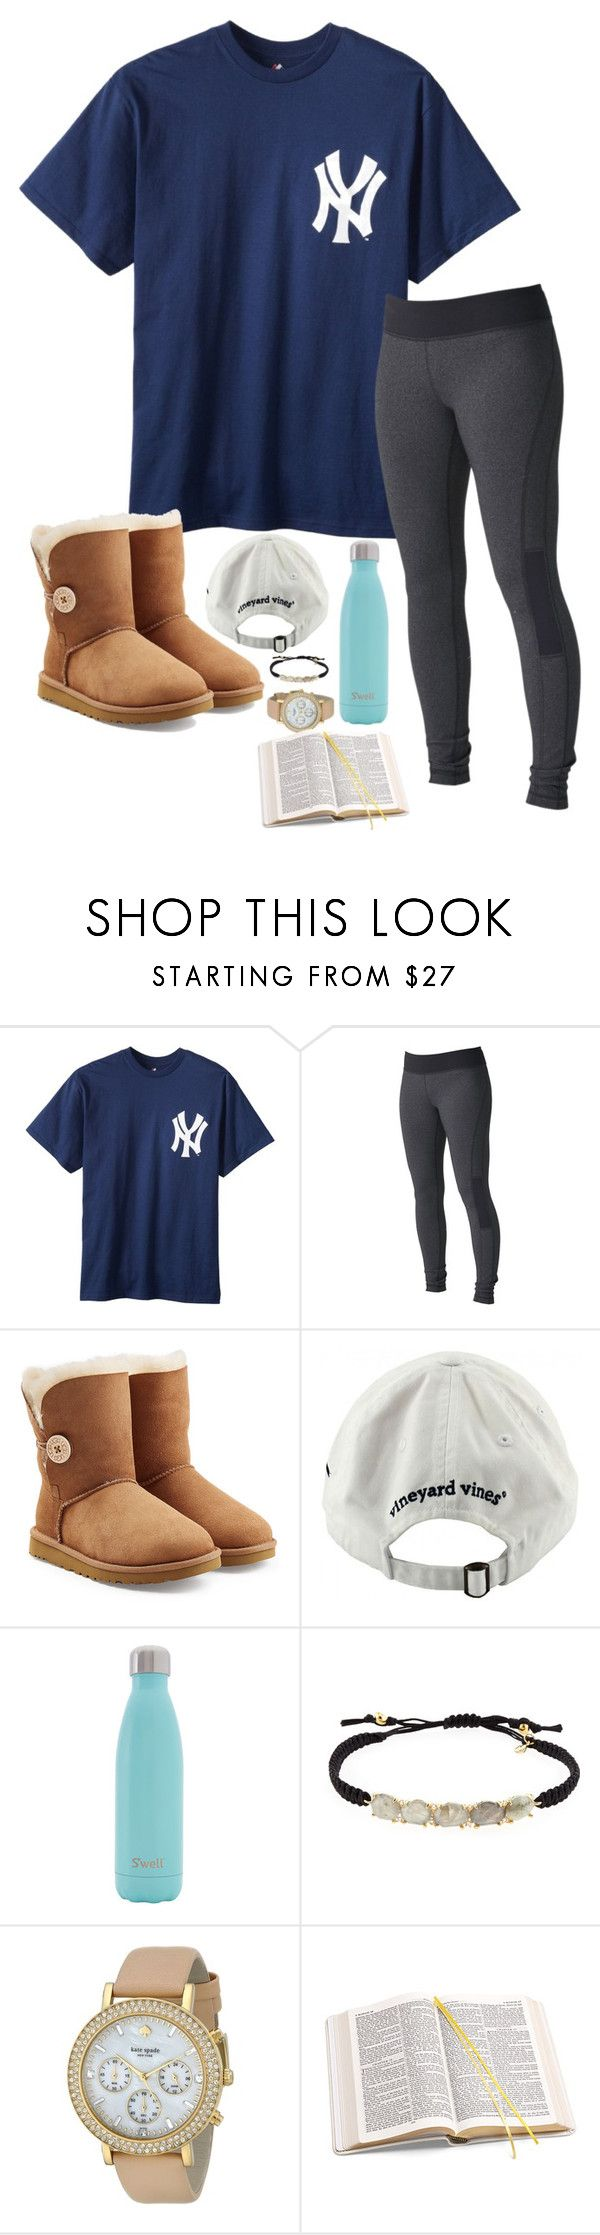 Watching Castle! by maggieholland00 ❤ liked on Polyvore featuring Roxy, UGG, Vineyard Vines, Swell, Tai, Kate Spade and Aspinal of London